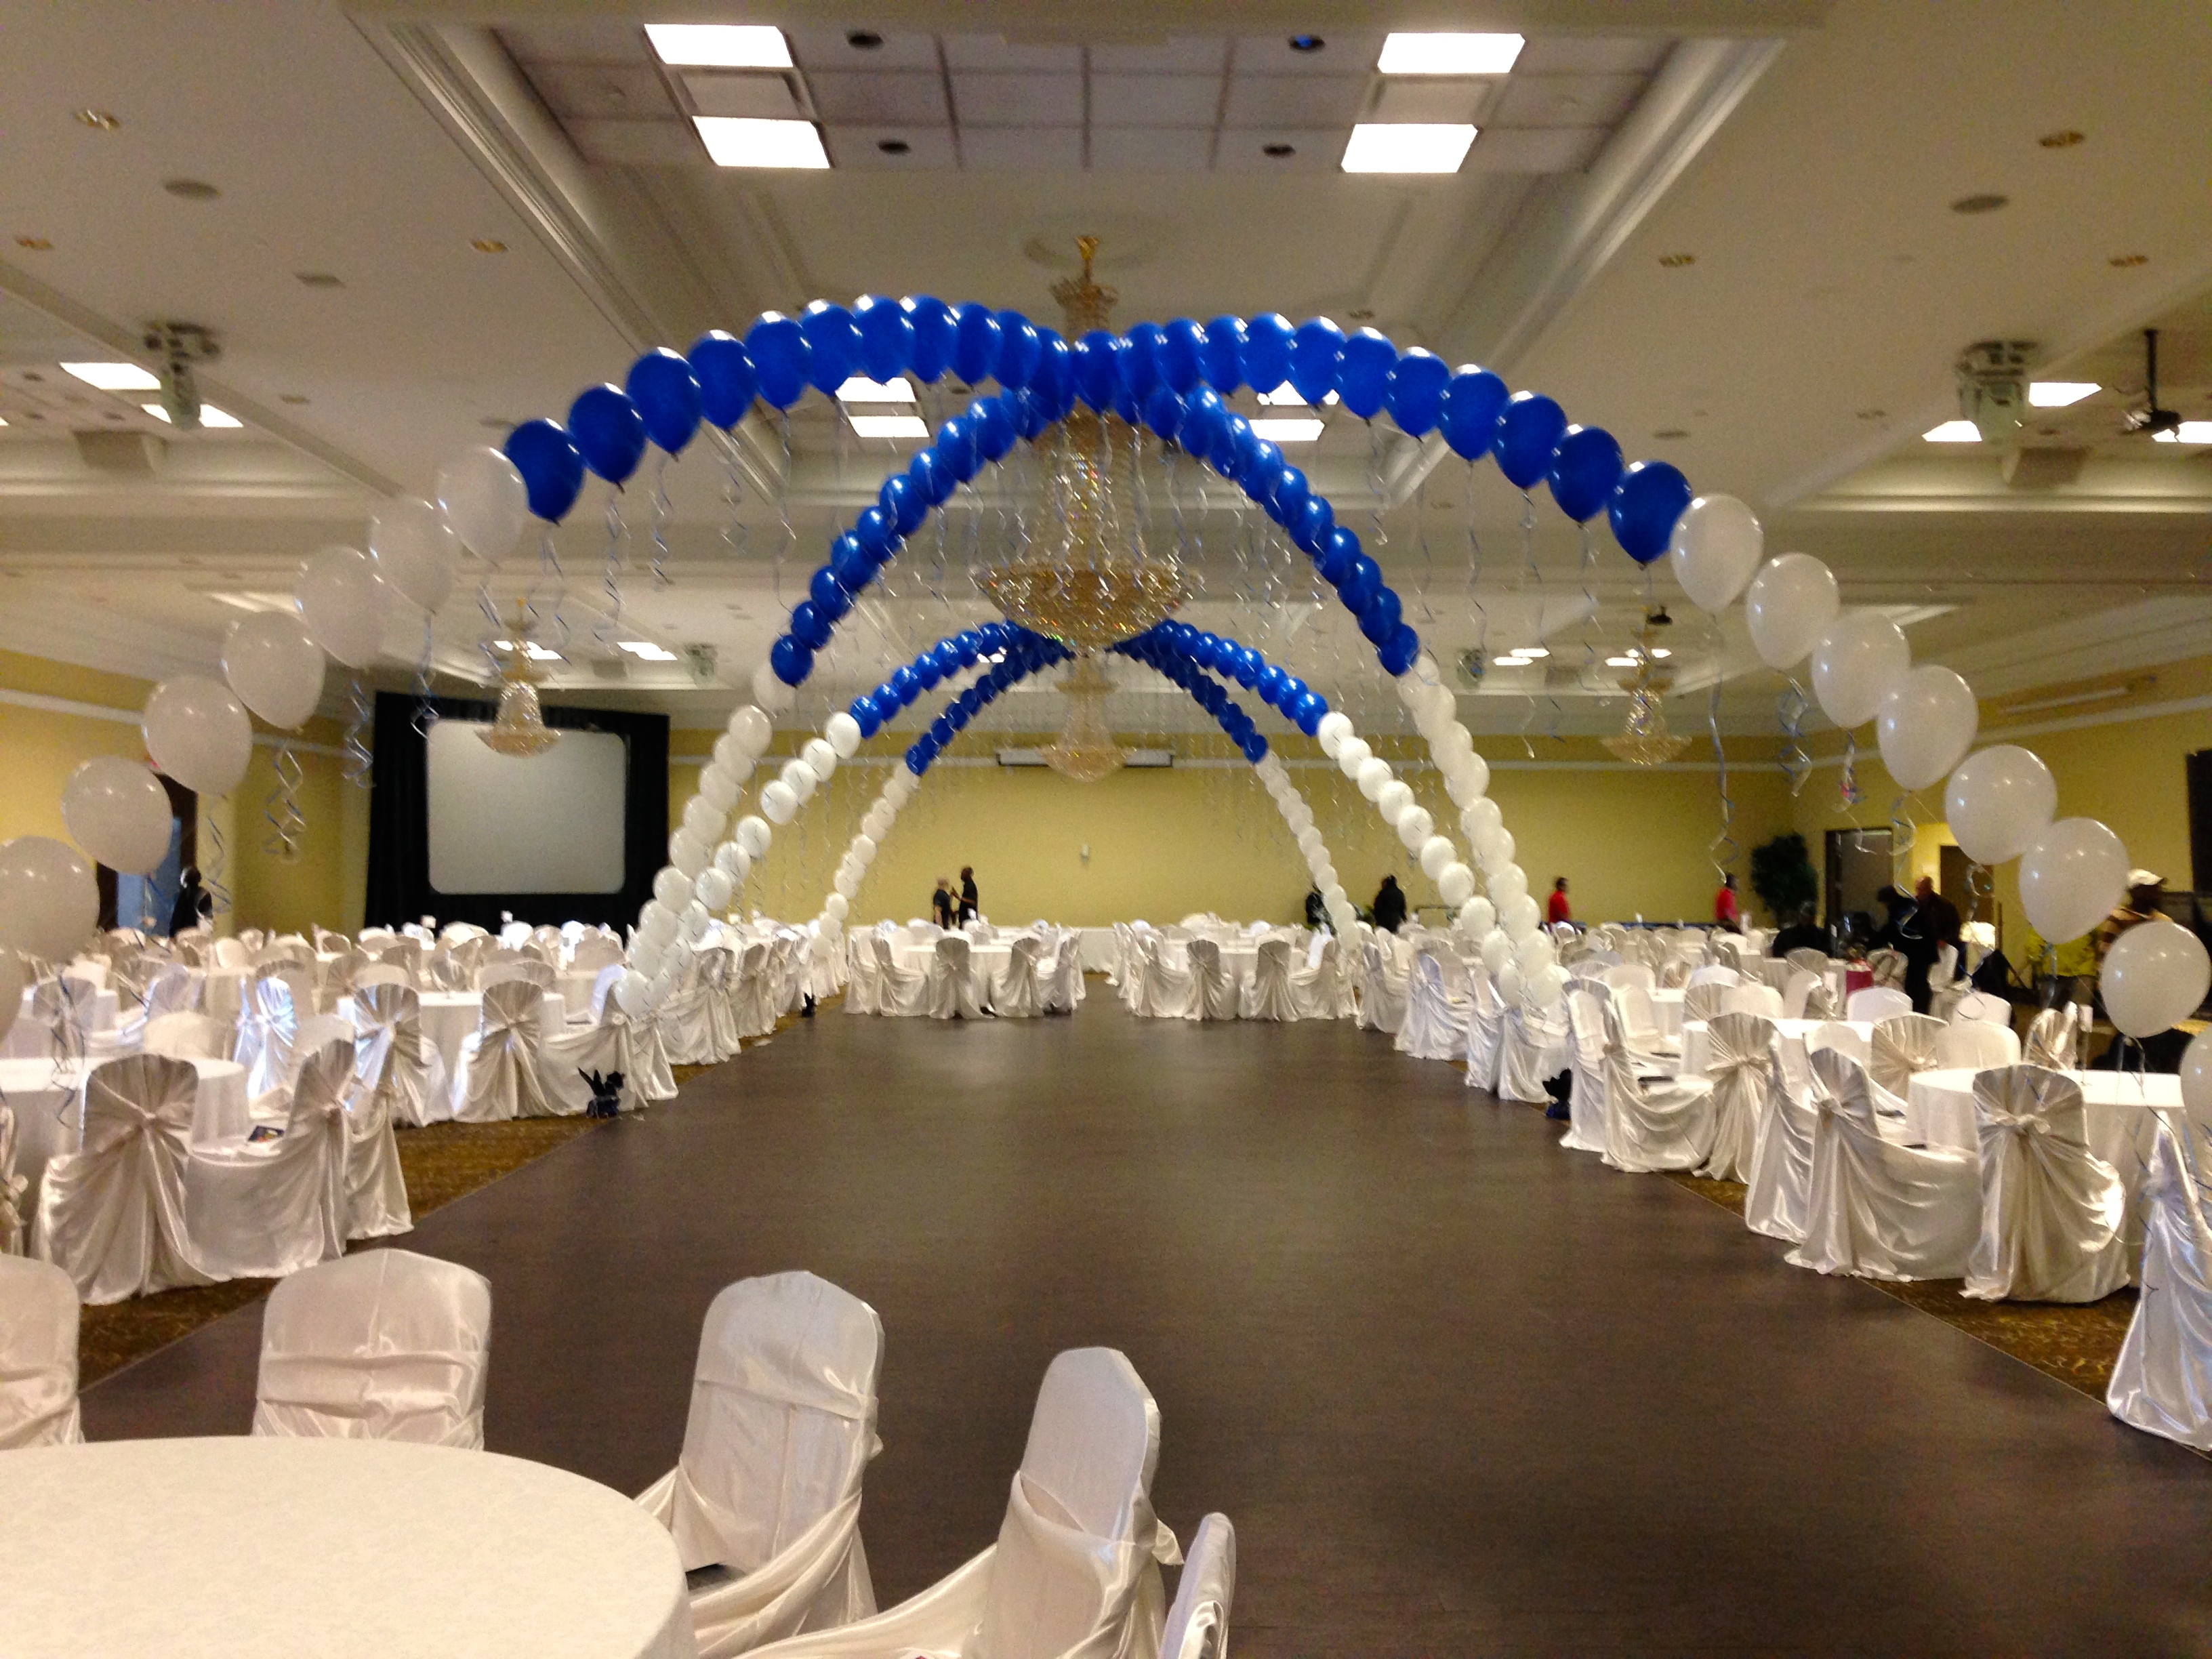 Balloon decorations sas party decorations for Balloon decoration for parties